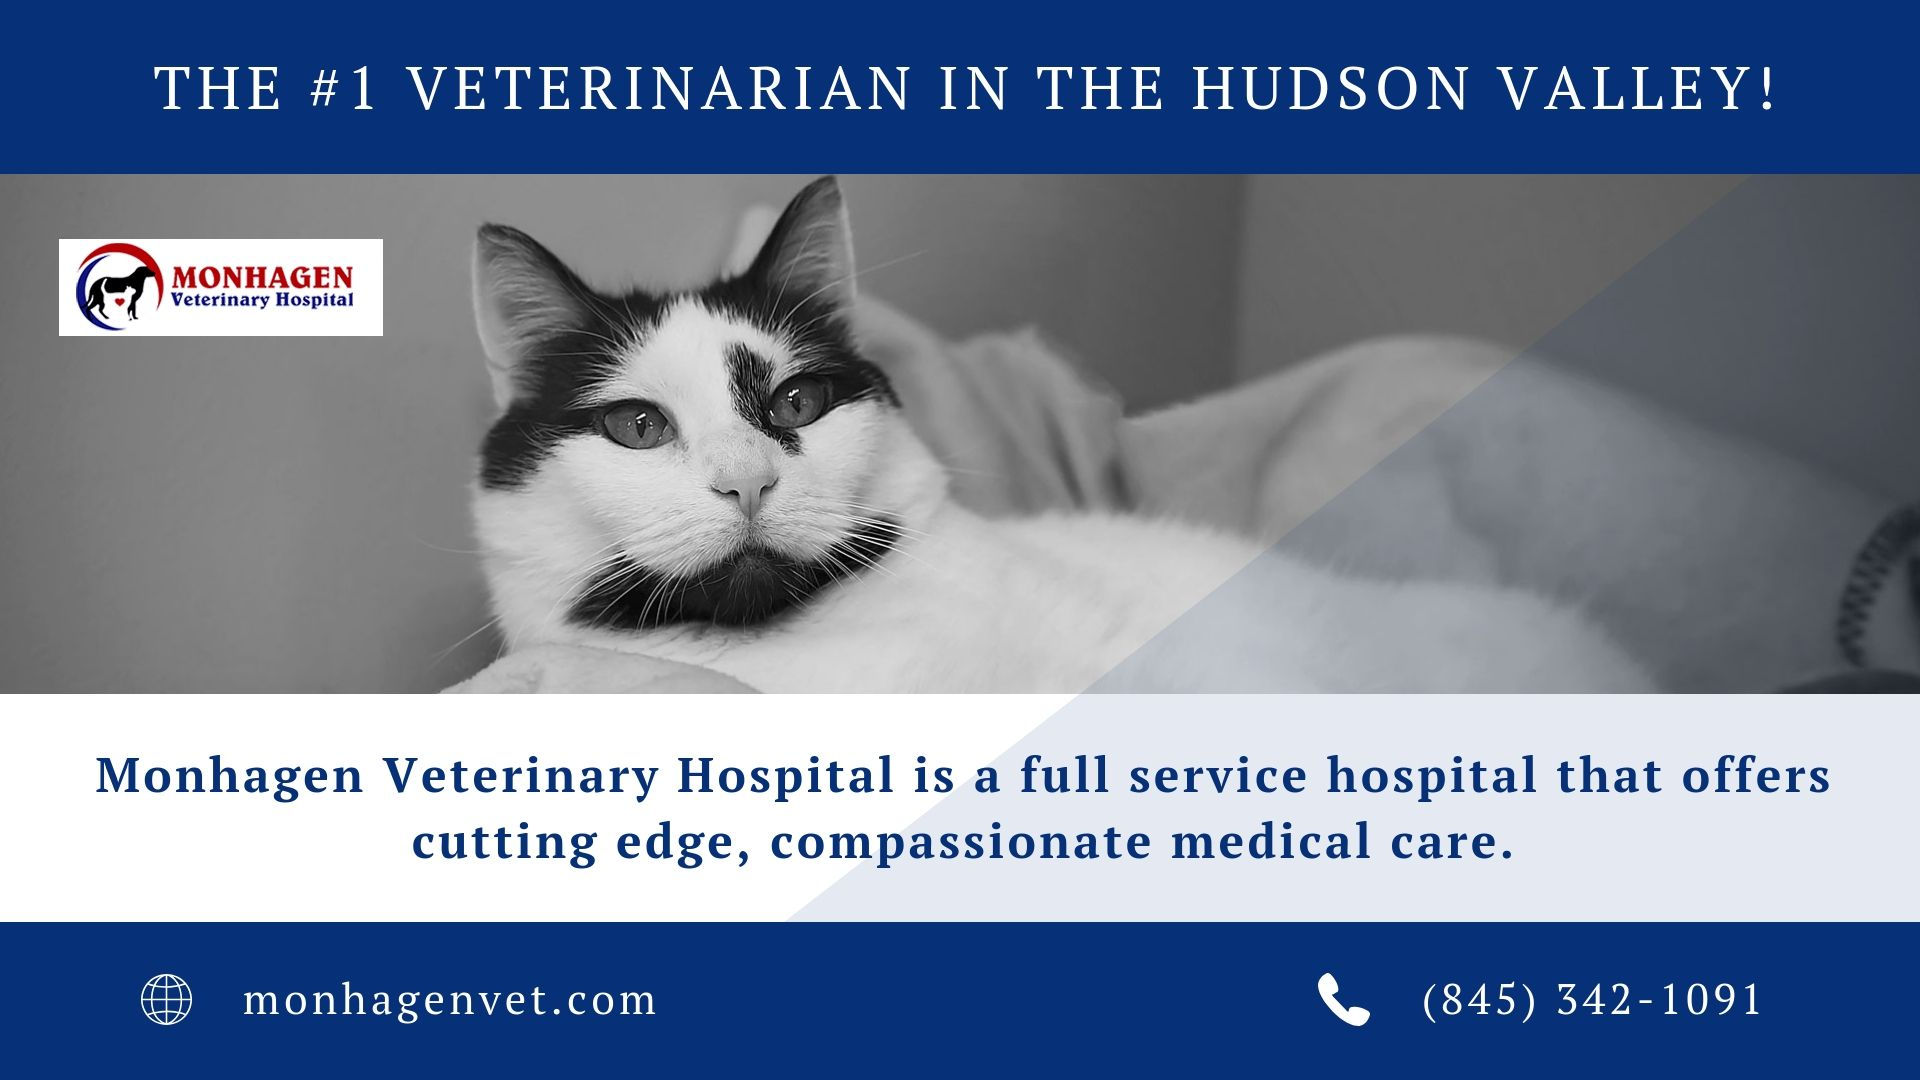 Monhagen Veterinary Hospital Is Your Best Pet Vet In Middletown That Offers Compassionate Medical Care To Keep Pet Vet Veterinary Hospital Pet Health